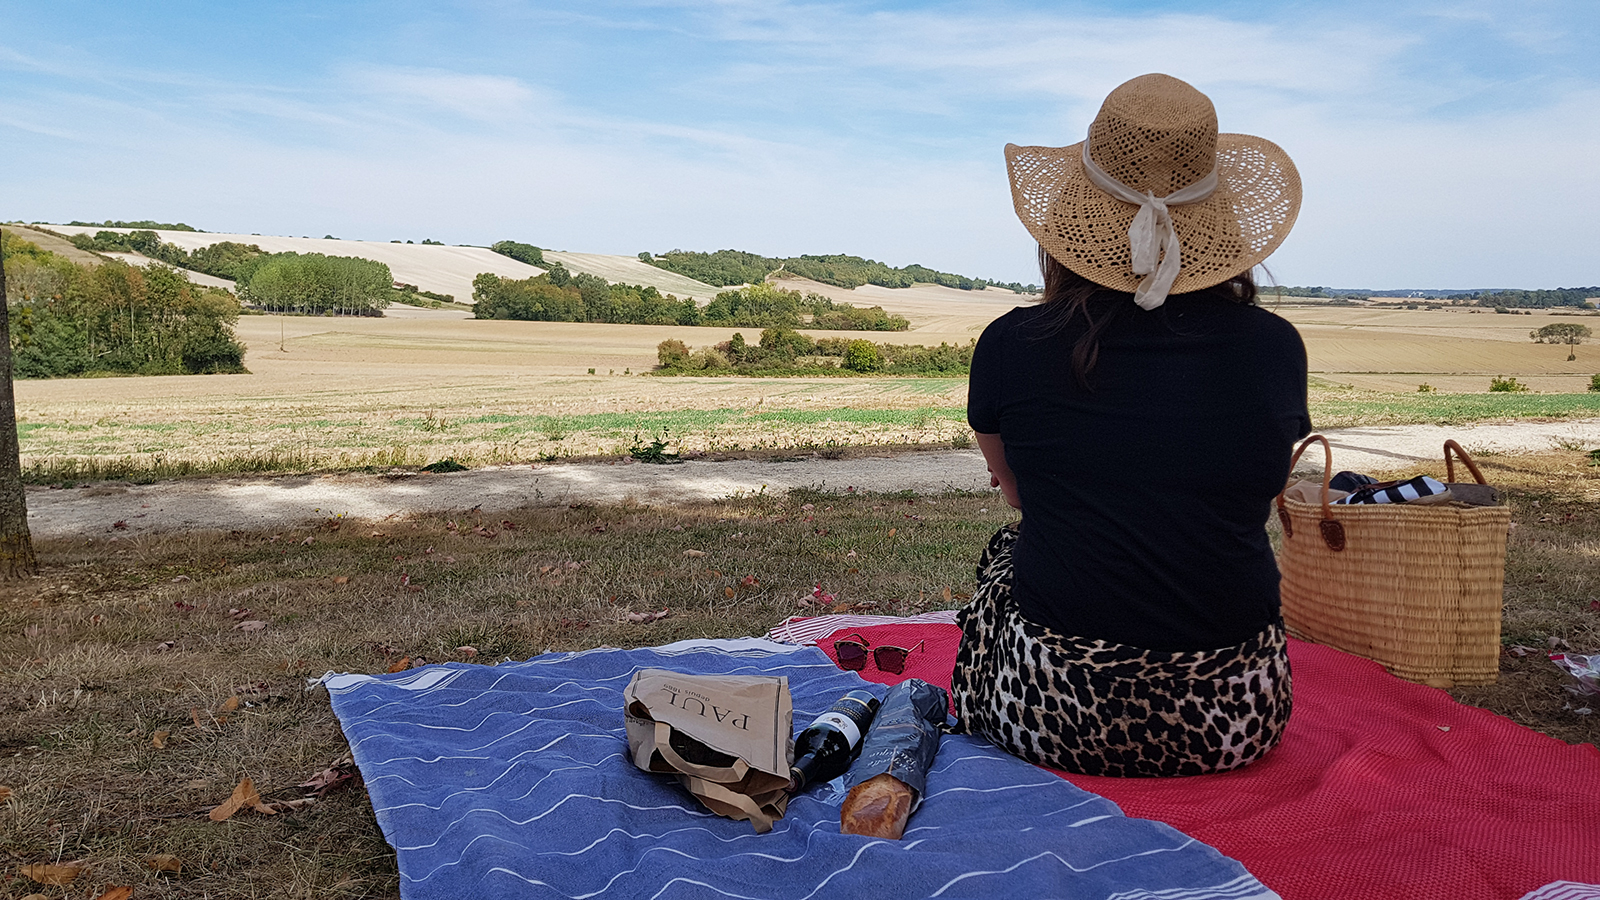 Picknick richting Bourgogne